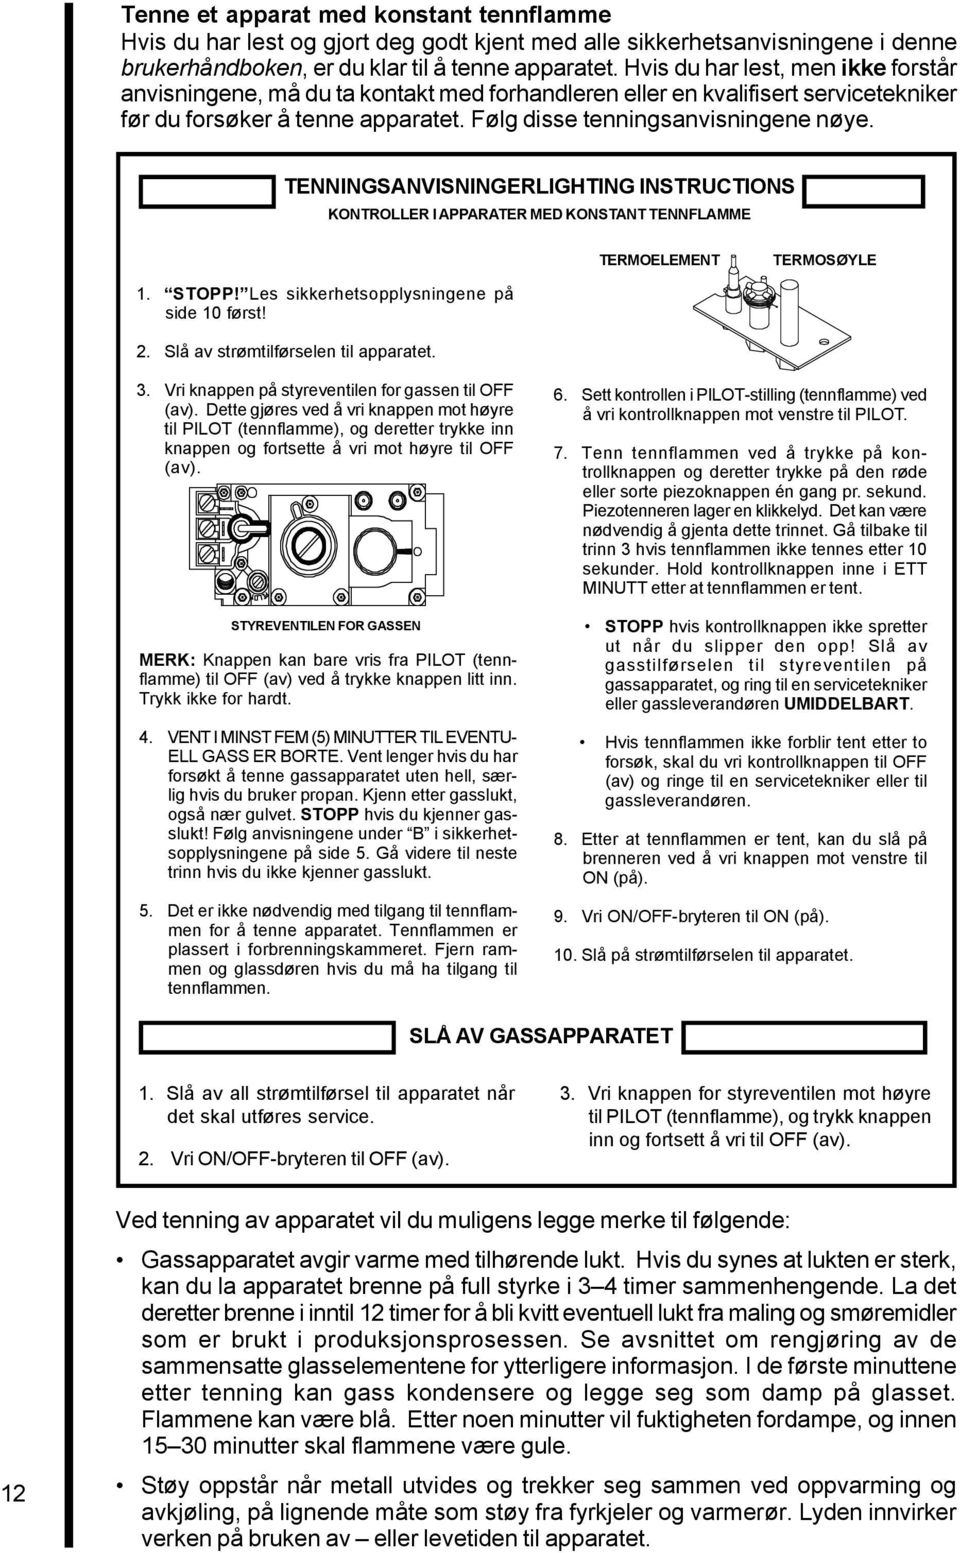 TENNINGSANVISNINGERLIGHTING INSTRUCTIONS KONTROLLER I APPARATER MED KONSTANT TENNFLAMME 1. STOPP Les sikkerhetsopplysningene på side 10 først 2. Slå av strømtilførselen til apparatet.